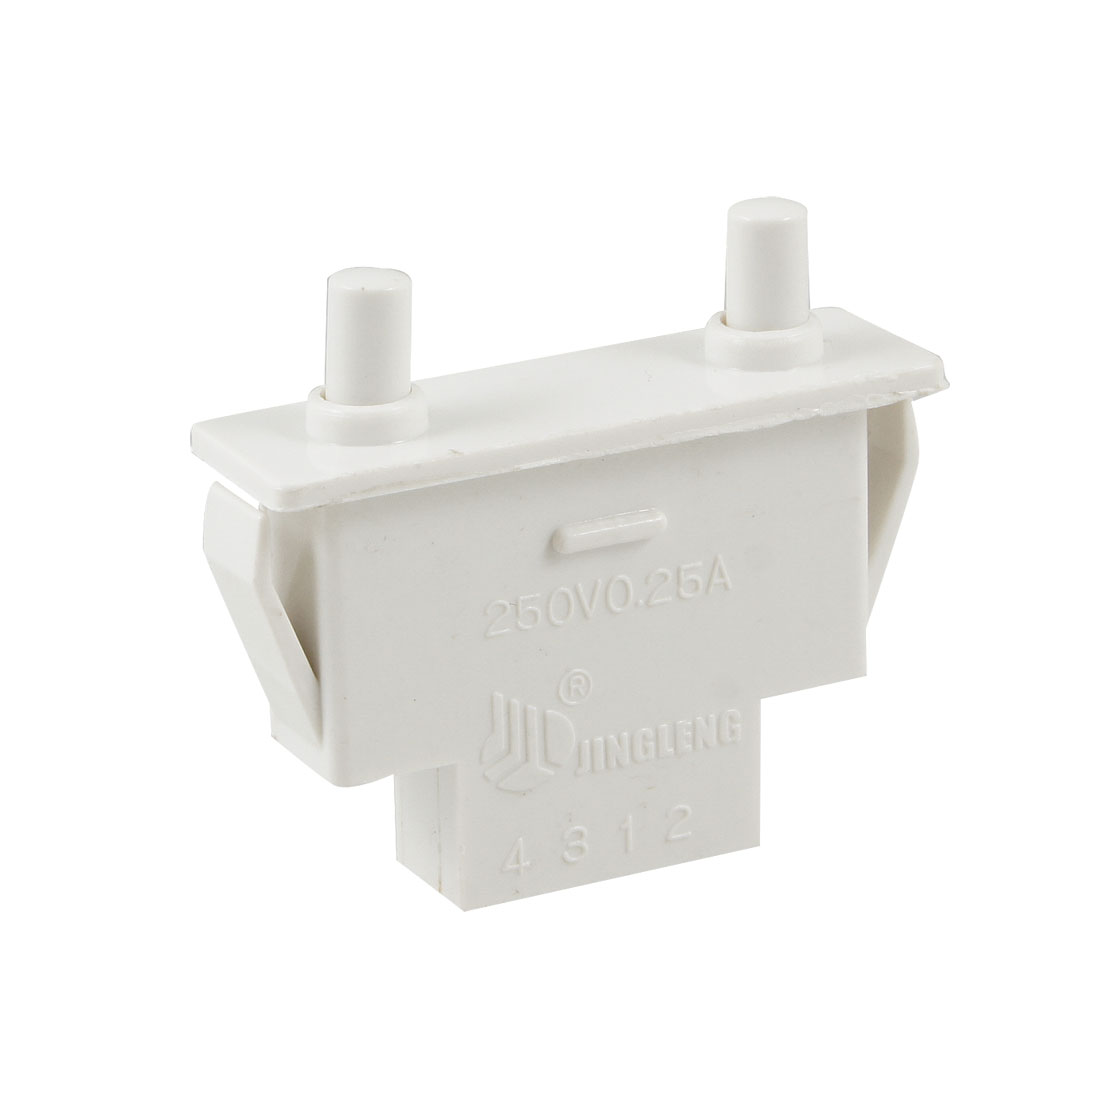 White Plastic Housing NC 250V 0.25A Refrigerator Door Switch